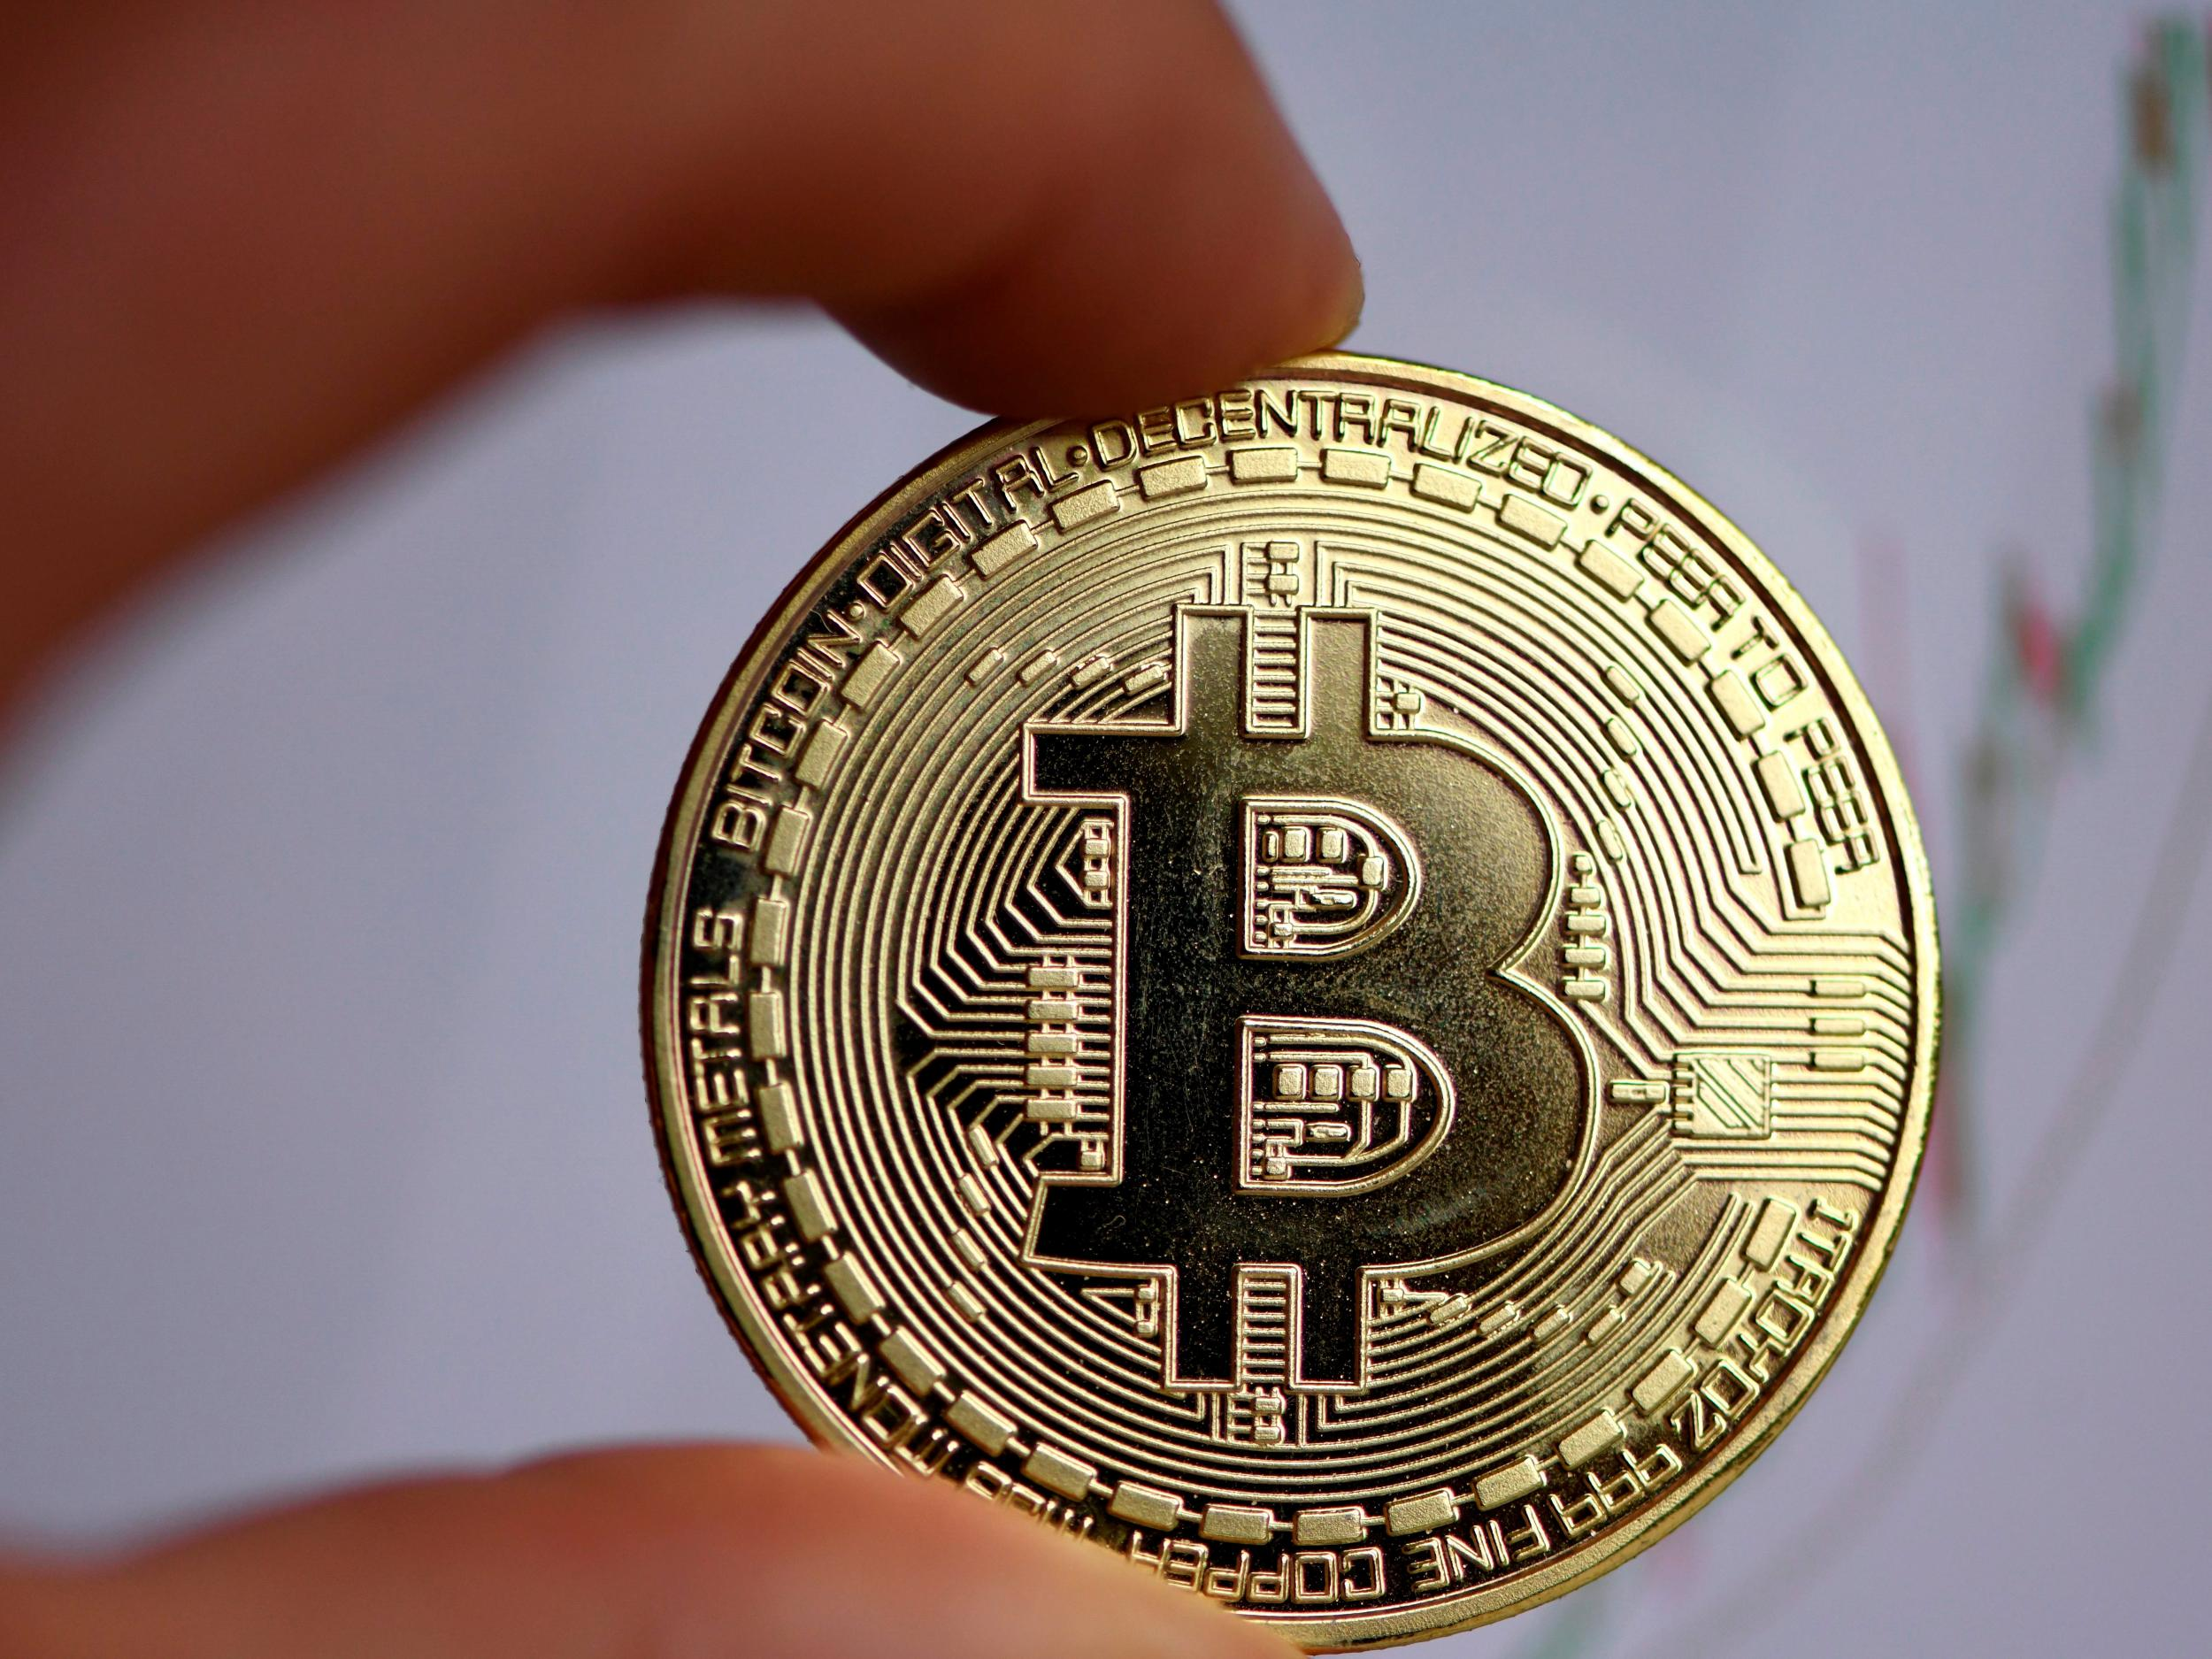 How Did The Bitcoin Price Hit $36800 Prior to Exchange's Closing?